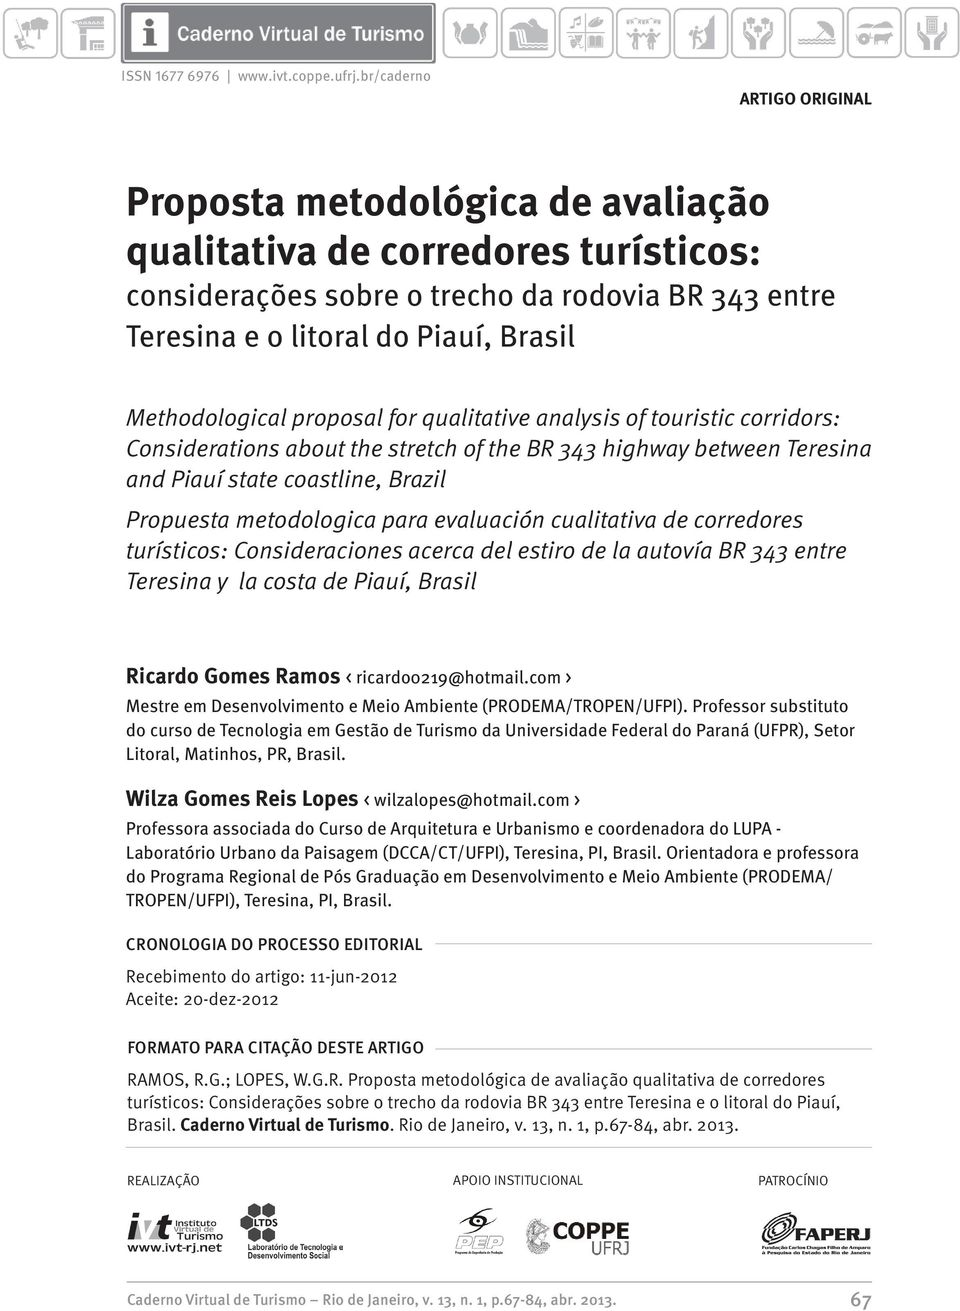 Methodological proposal for qualitative analysis of touristic corridors: Considerations about the stretch of the BR 343 highway between Teresina and Piauí state coastline, Brazil Propuesta